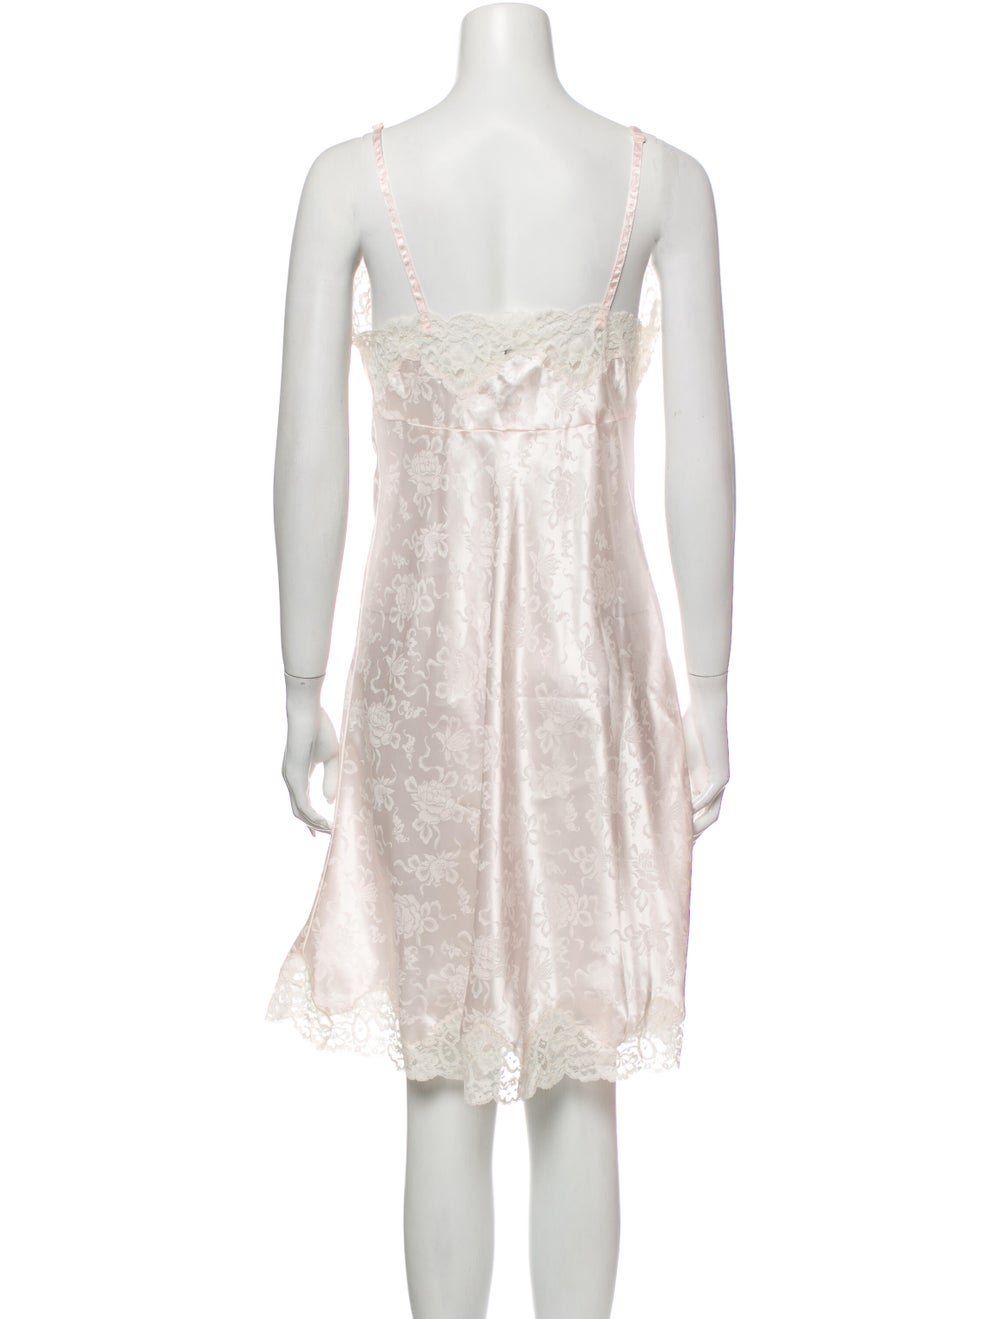 Christian Dior Vintage Floral Print Nightgown Pink - image 3